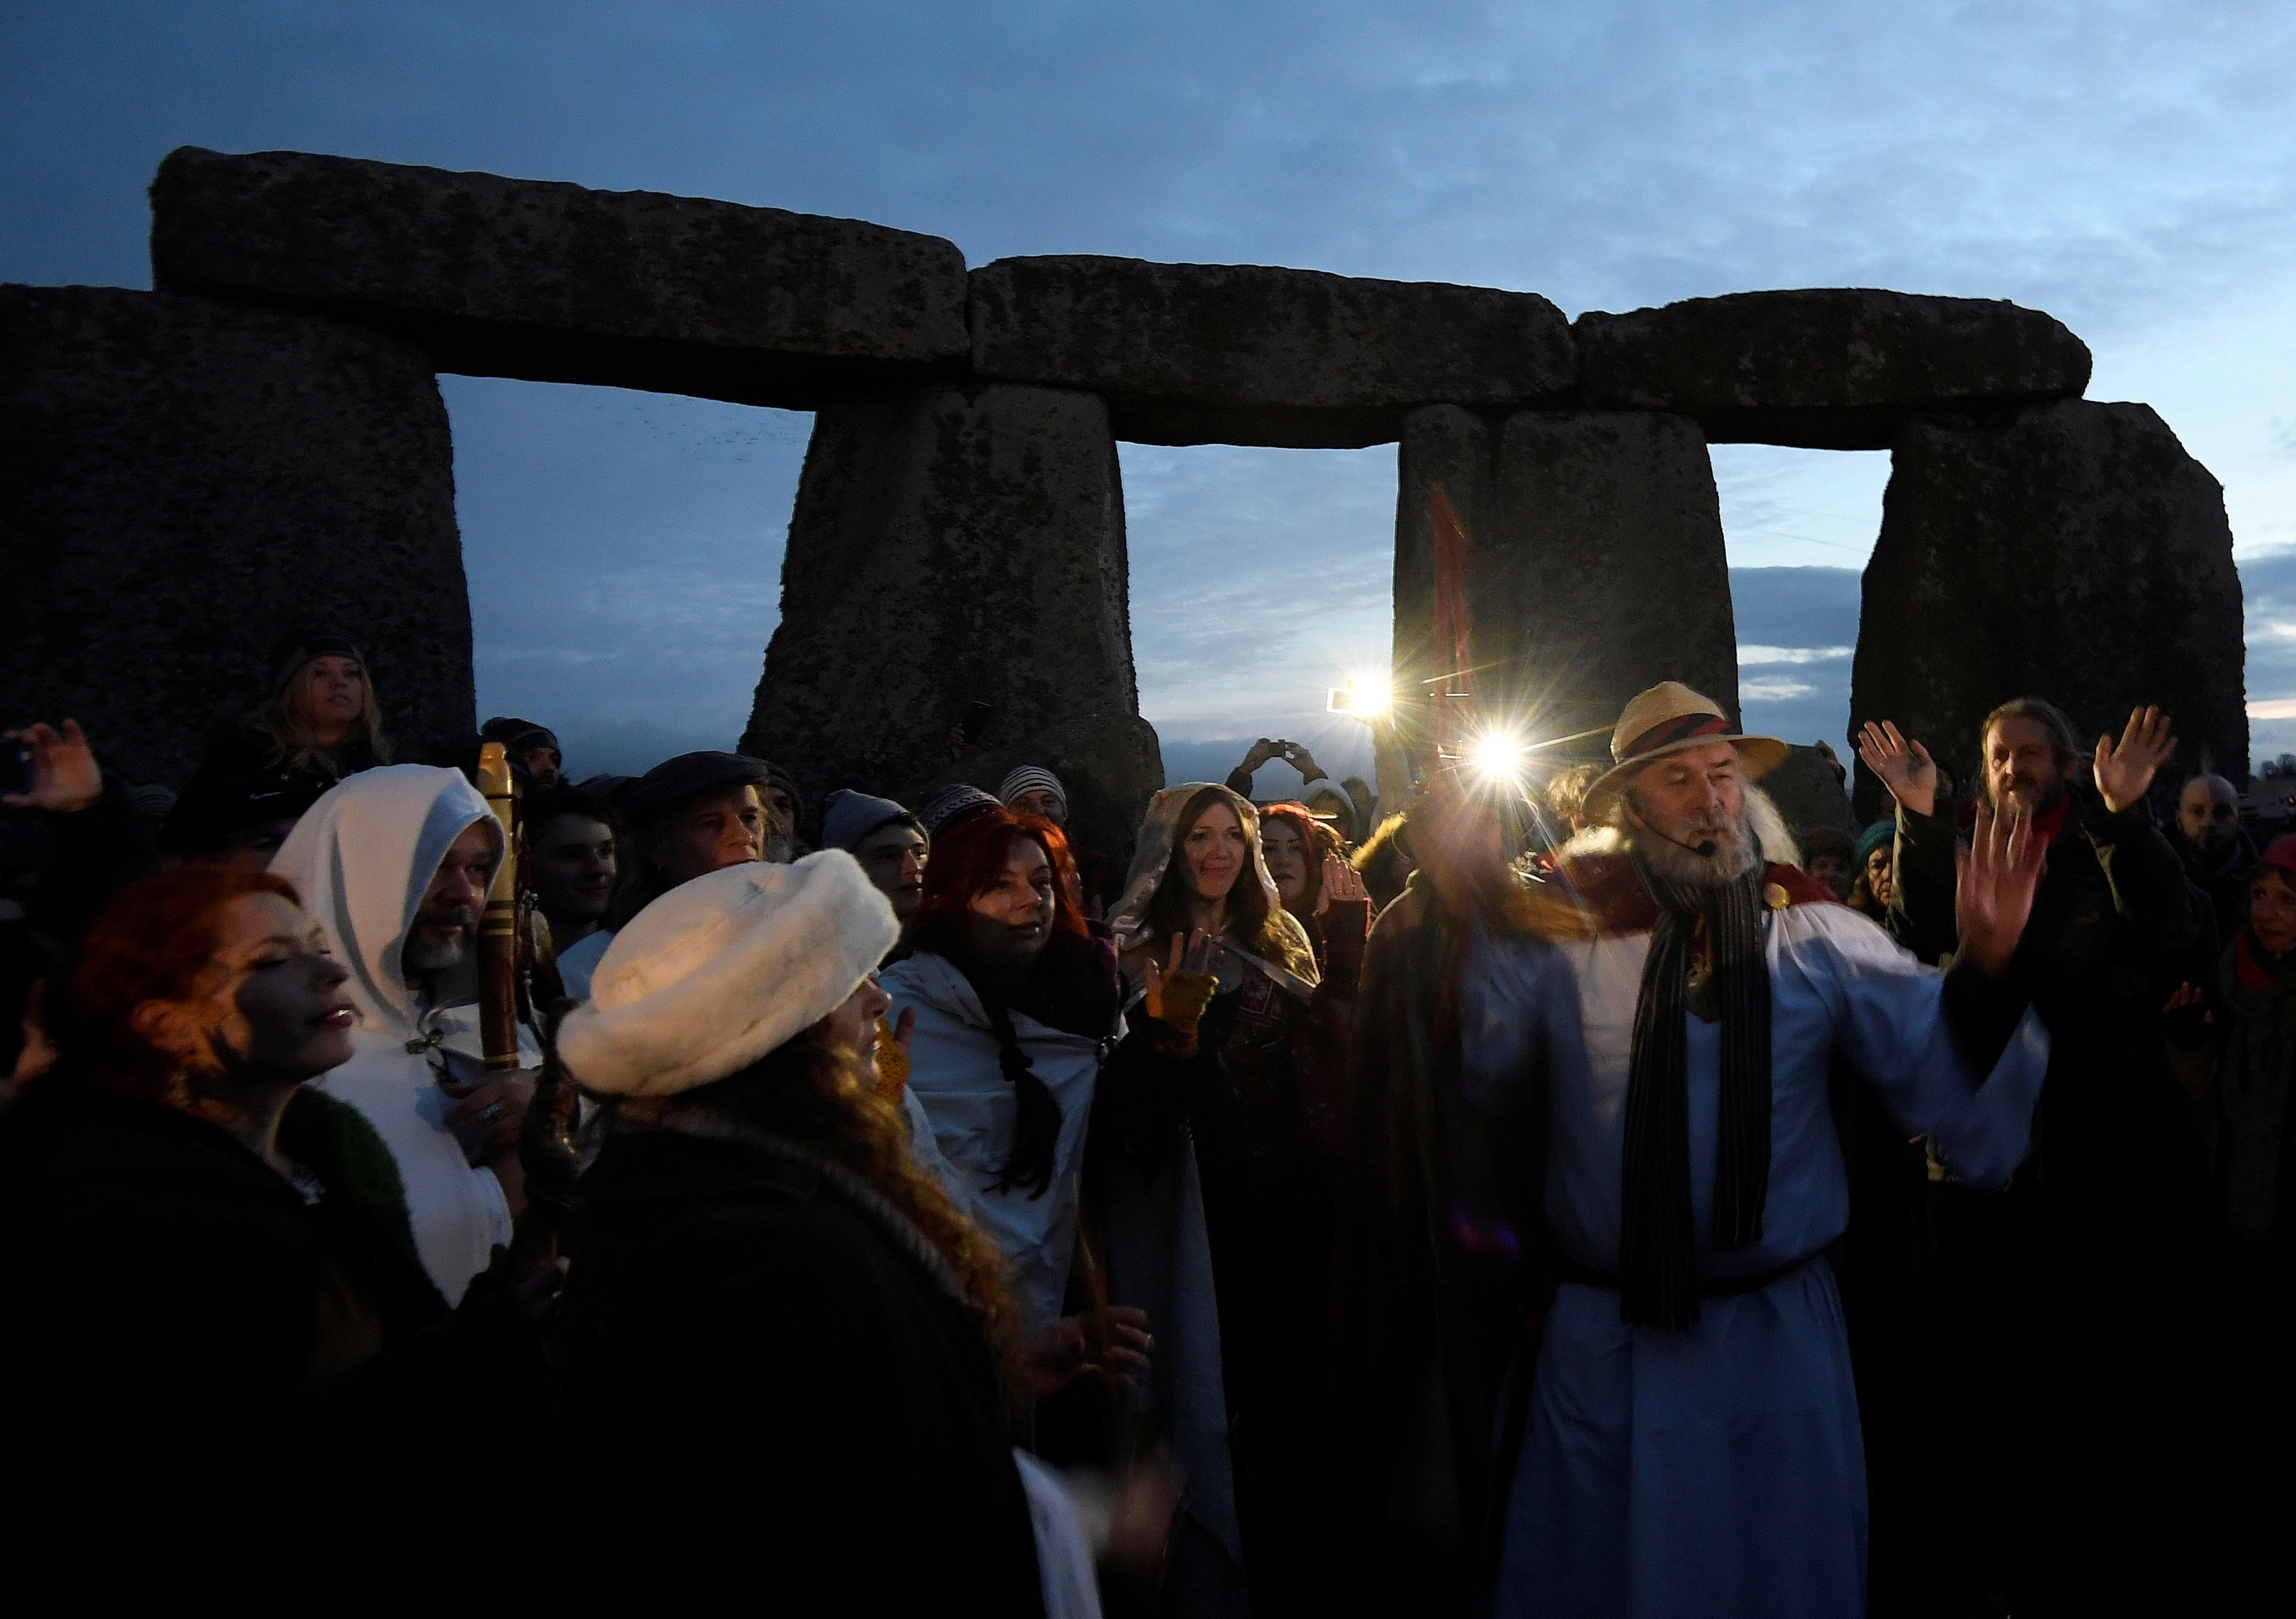 Visitors and revelers react amongst the prehistoric stones of the Stonehenge monument at dawn on Winter Solstice, the shortes